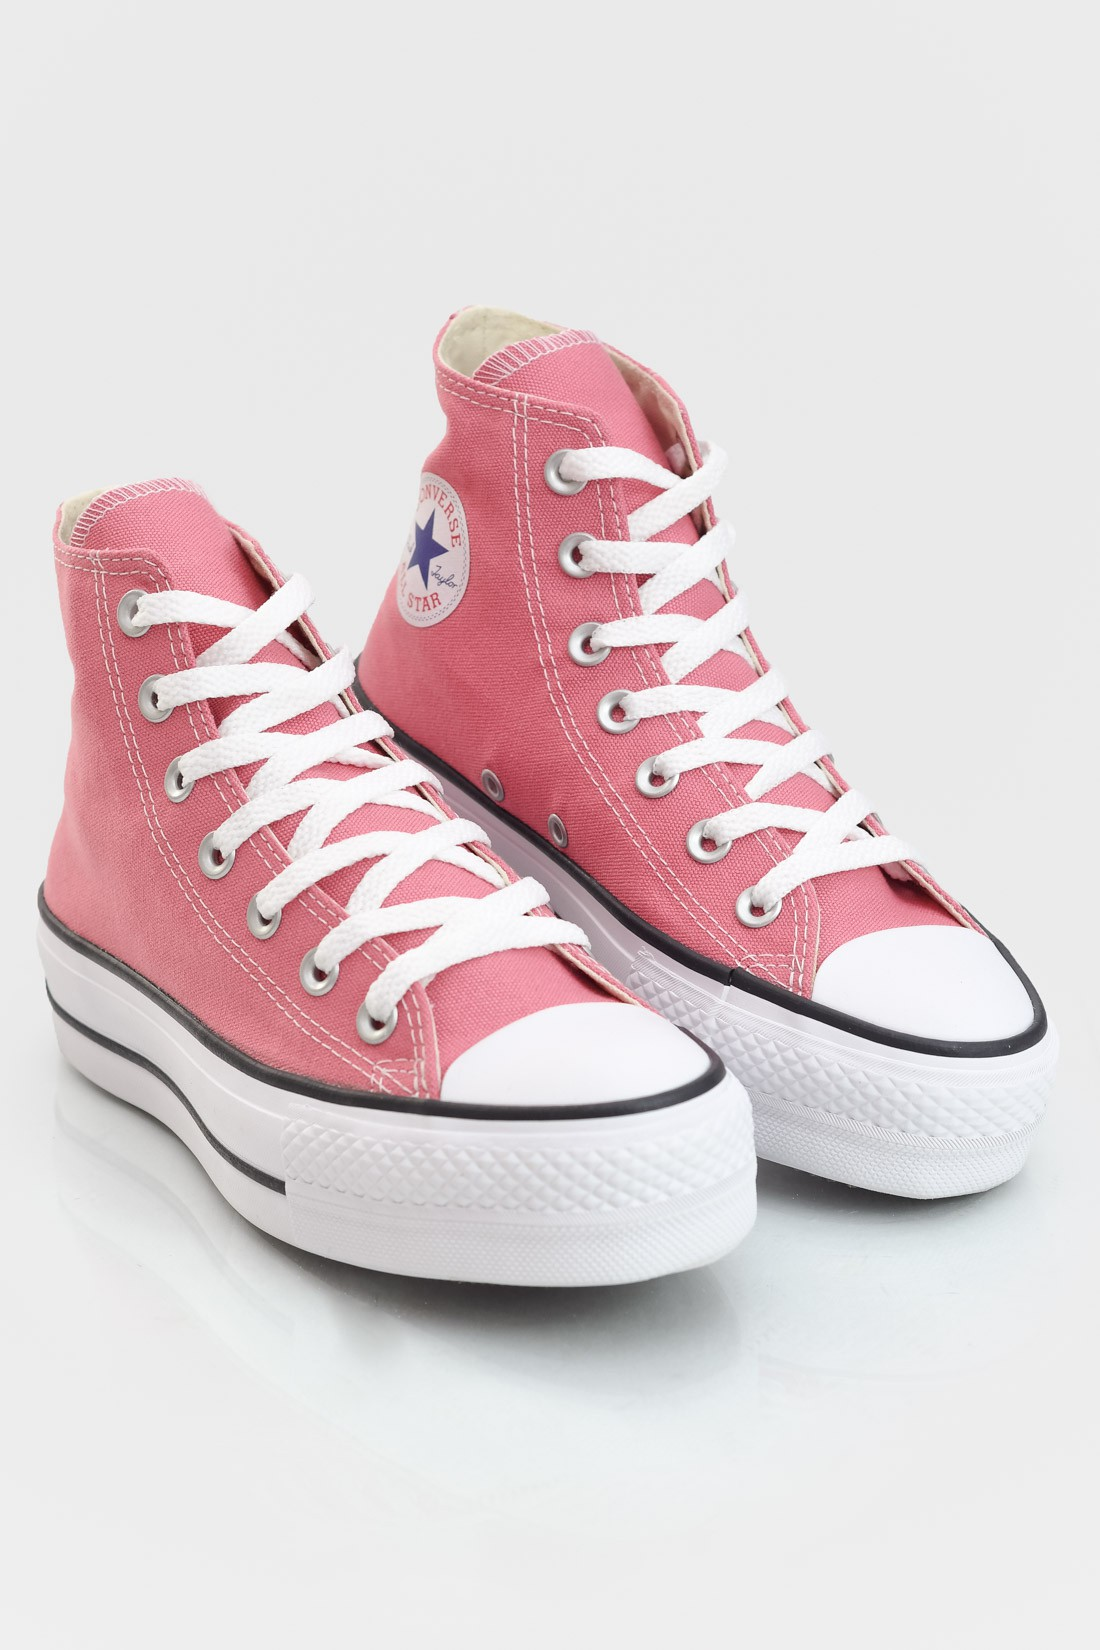 Tenis Botinha Fem All Star Flatform